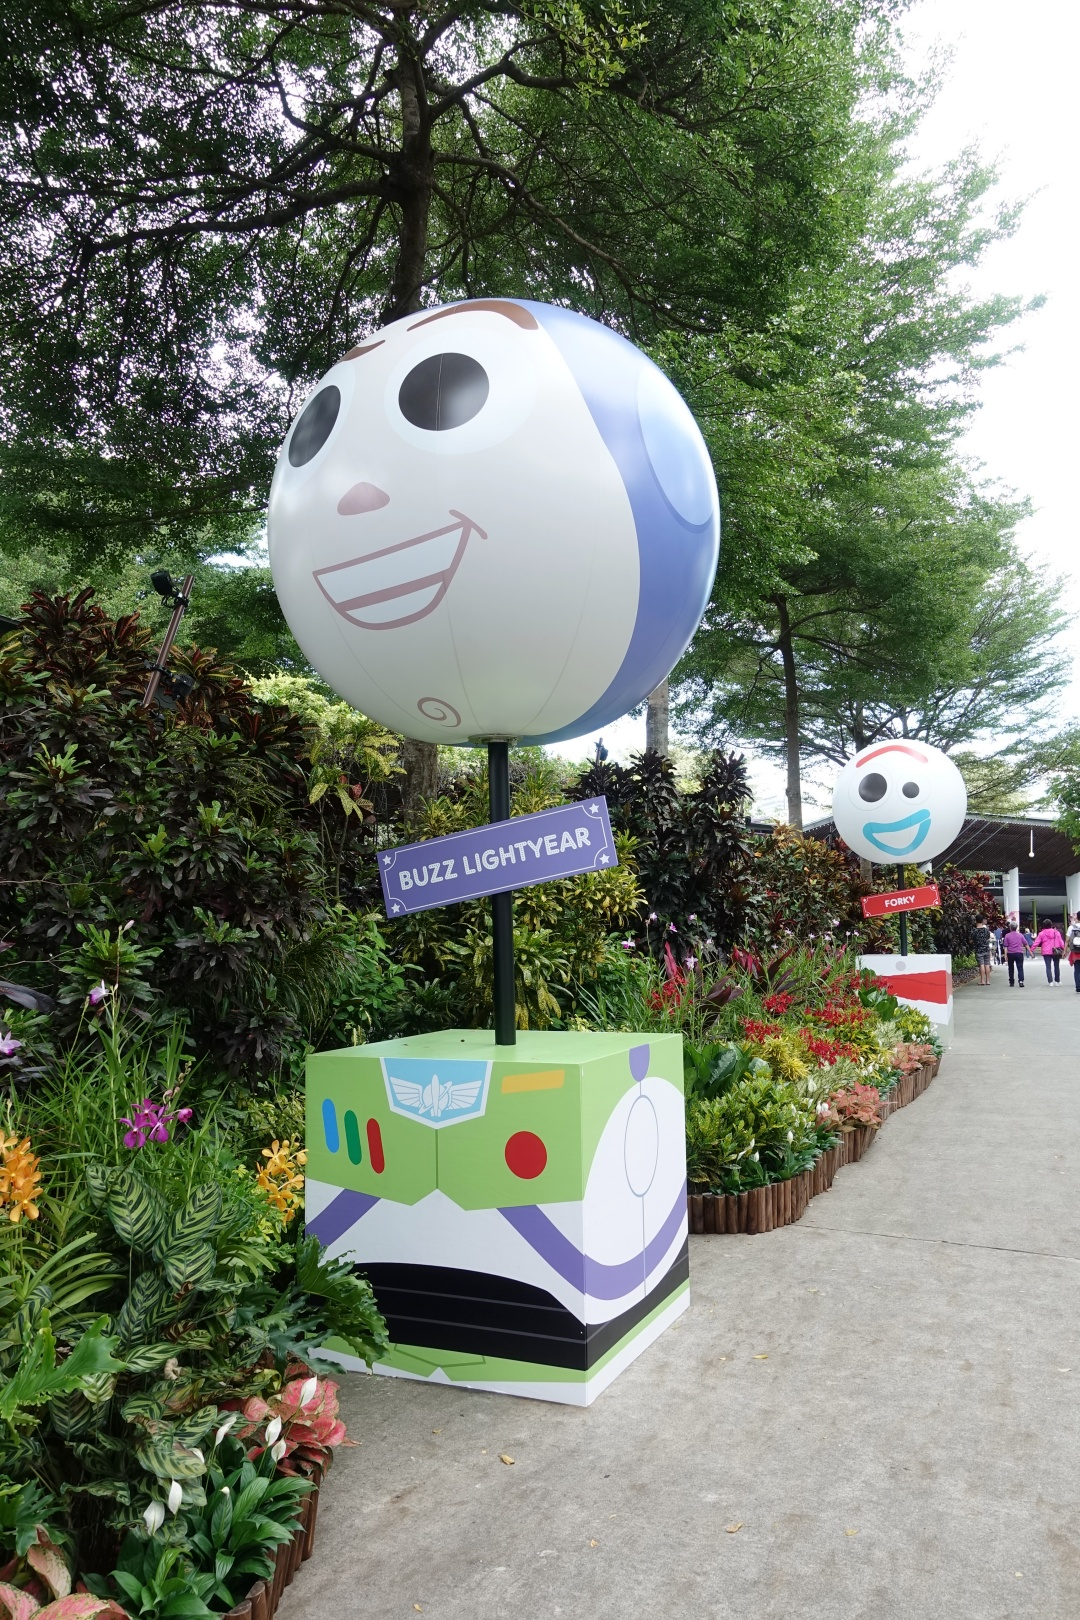 Buzz Lightyear and Forky Toy Story theme balloon at Children's Festival | joanne-khoo.com